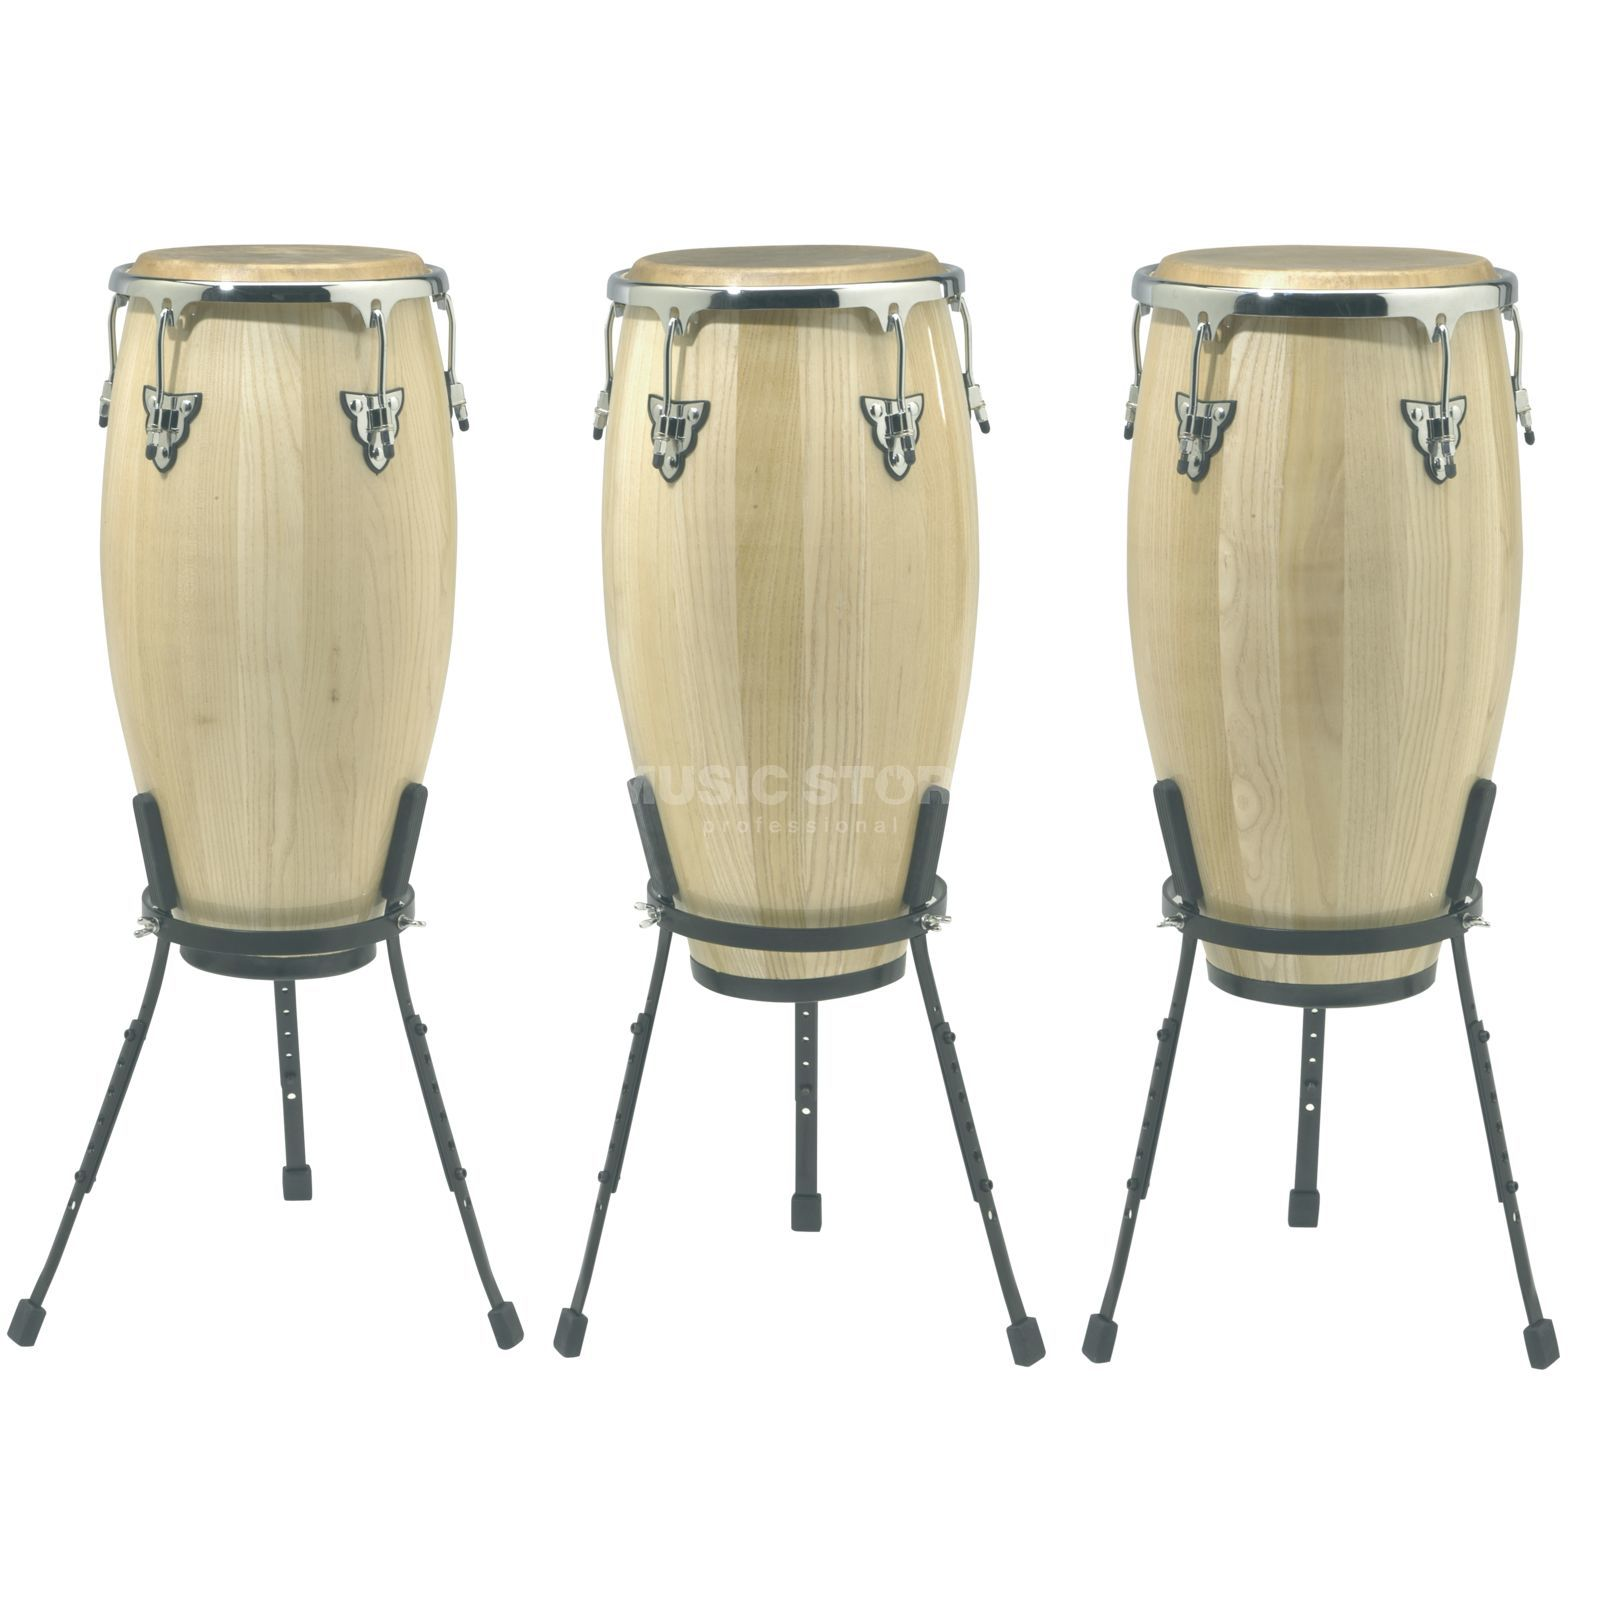 "SET SONOR Champion Conga Set NHG Natural, 11""+11 3/4""+12 1/2"" Produktbillede"